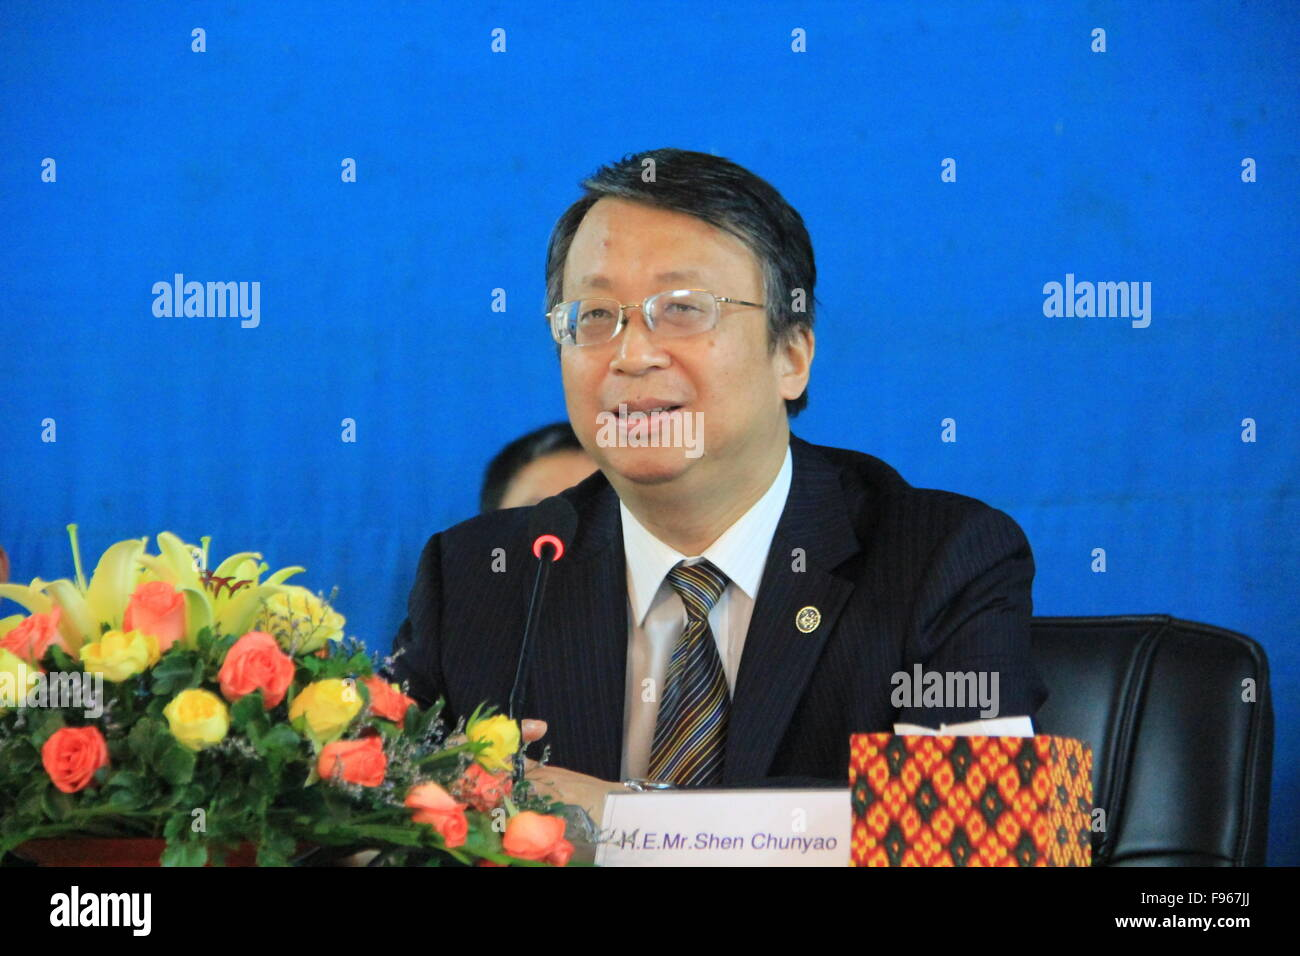 (151215) -- PHNOM PENH, Dec. 15 (Xinhua) -- Shen Chunyao, deputy secretary general of the Chinese National People's - Stock Image